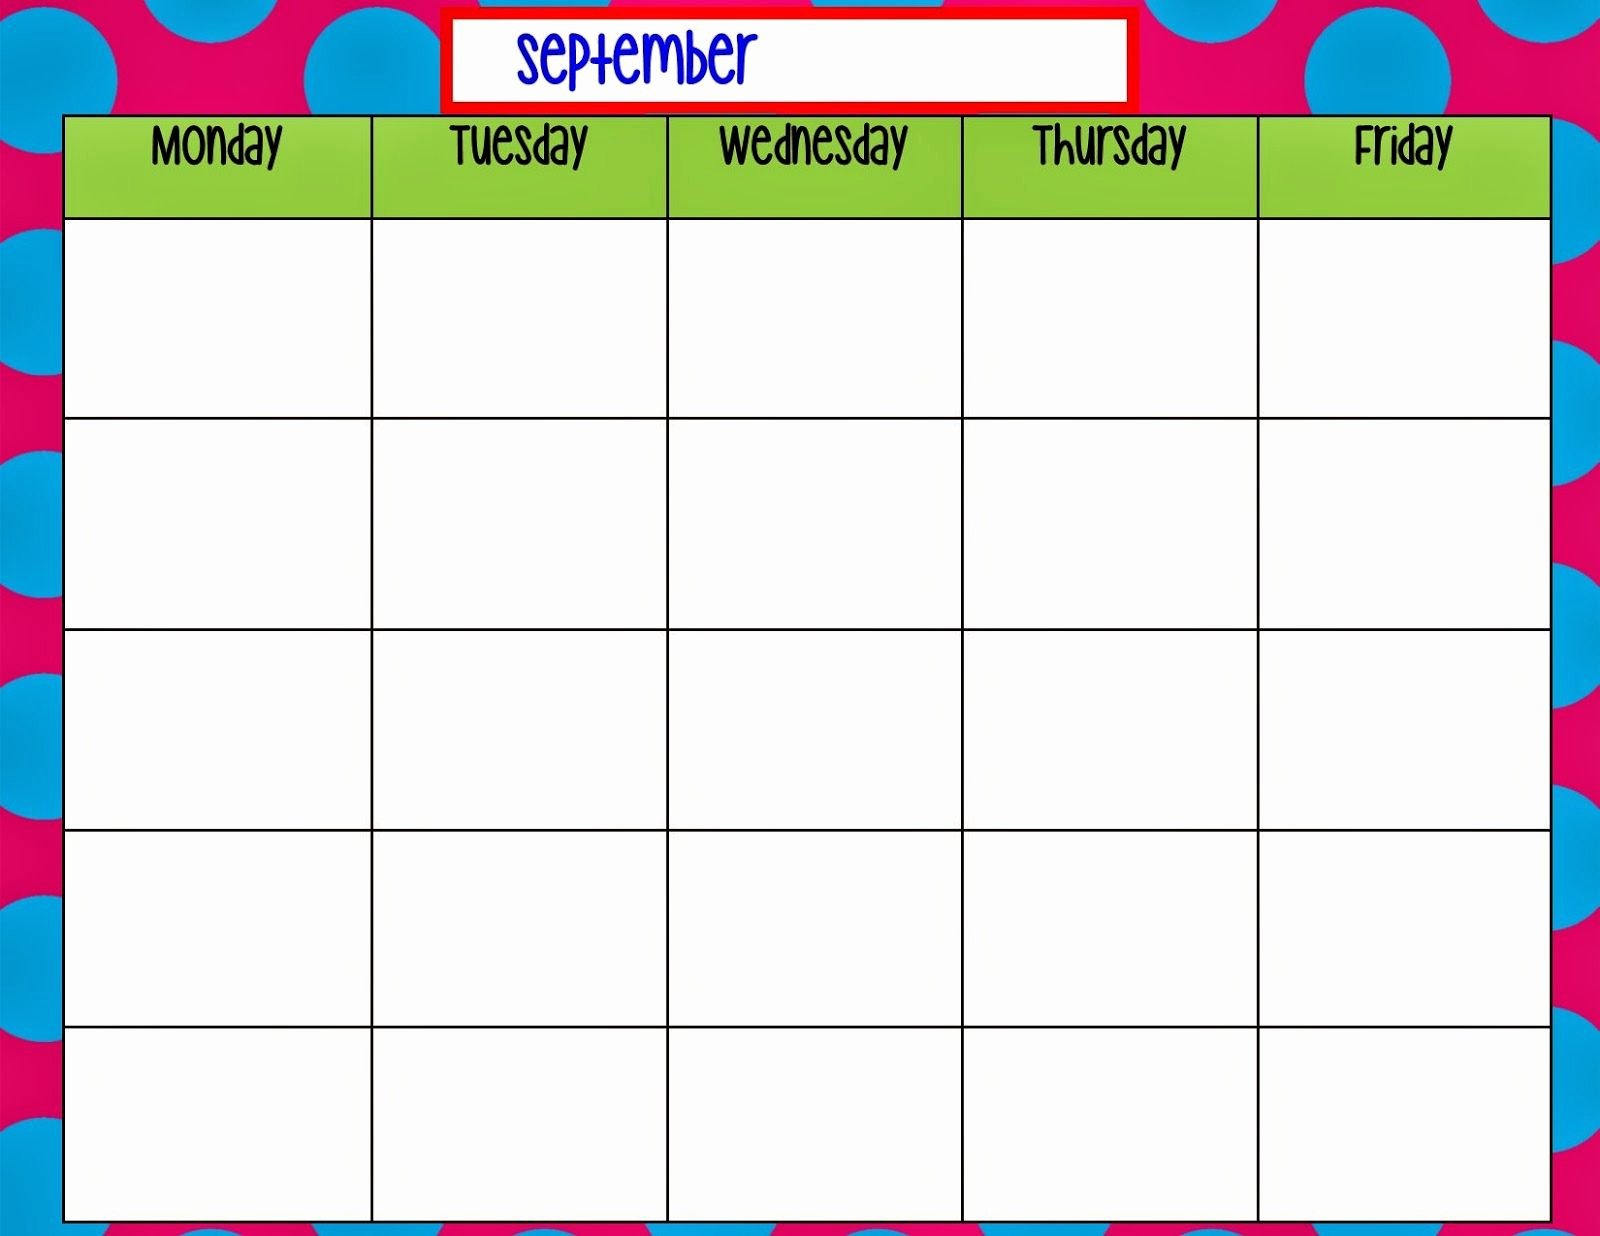 Monday to Friday Schedule Template Luxury Monday Through Friday Calendar Template